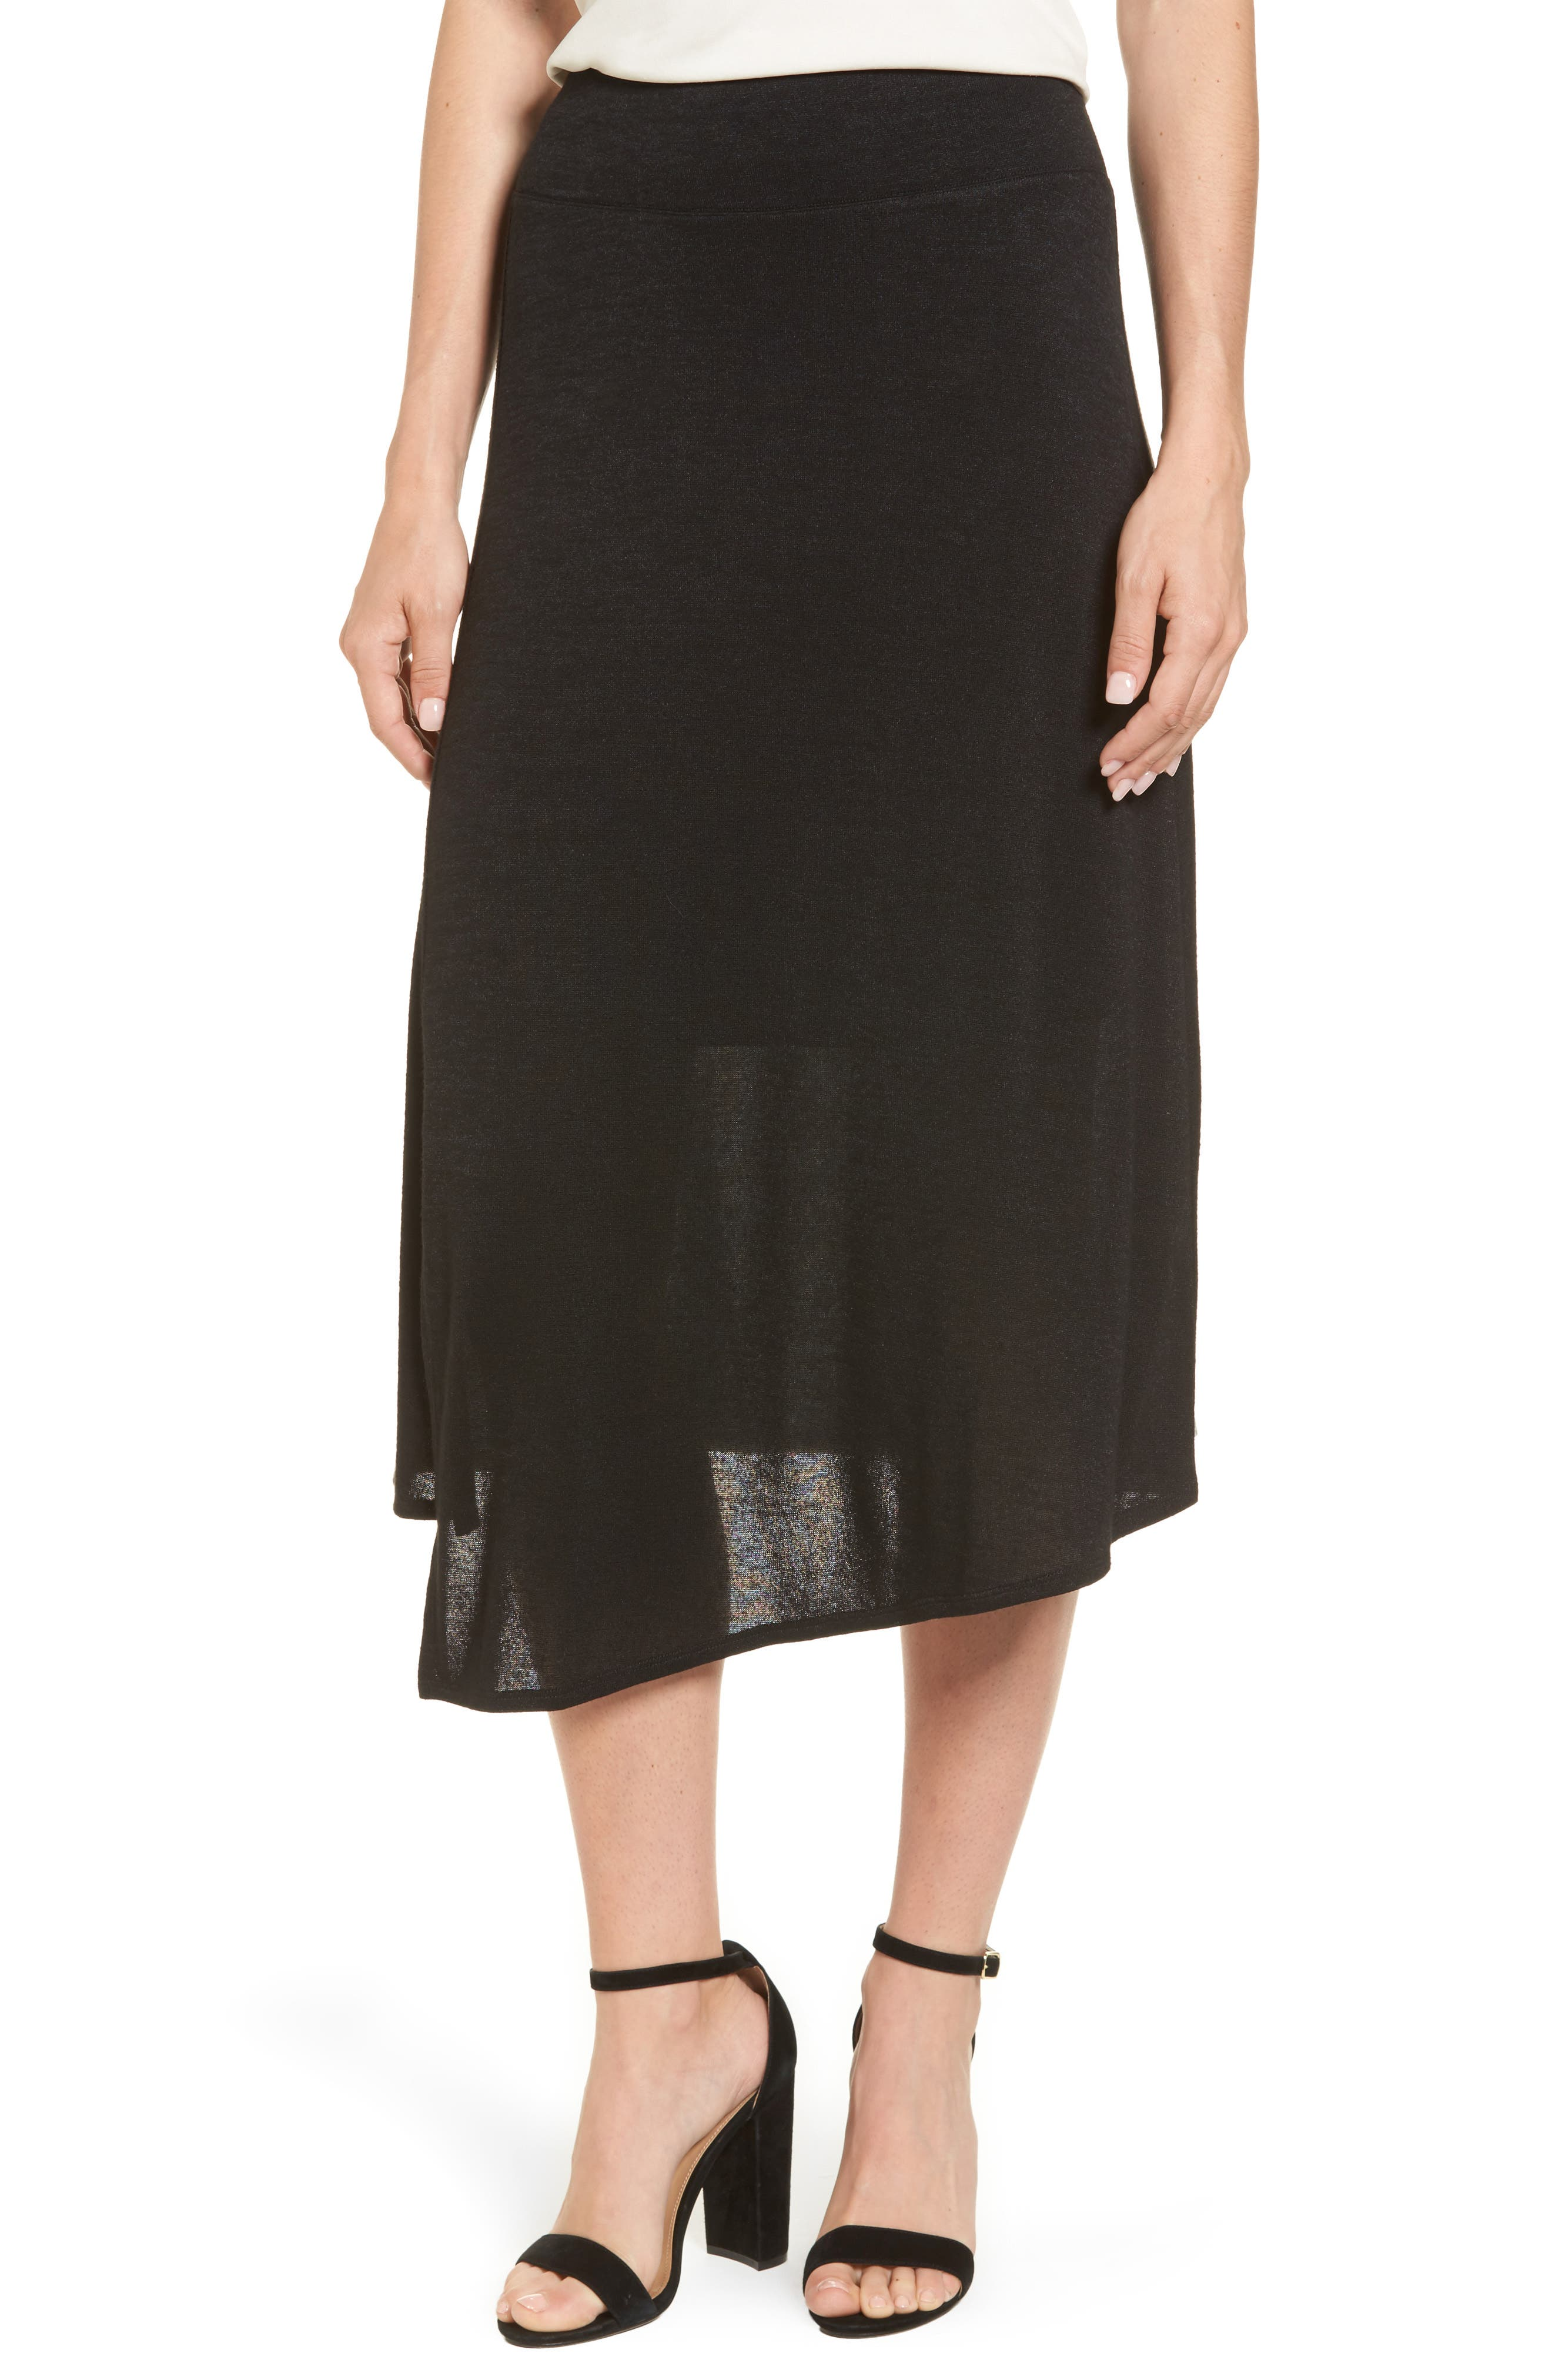 Nic + Zoe Every Occasion Faux Wrap Skirt,                             Main thumbnail 1, color,                             Black Onyx